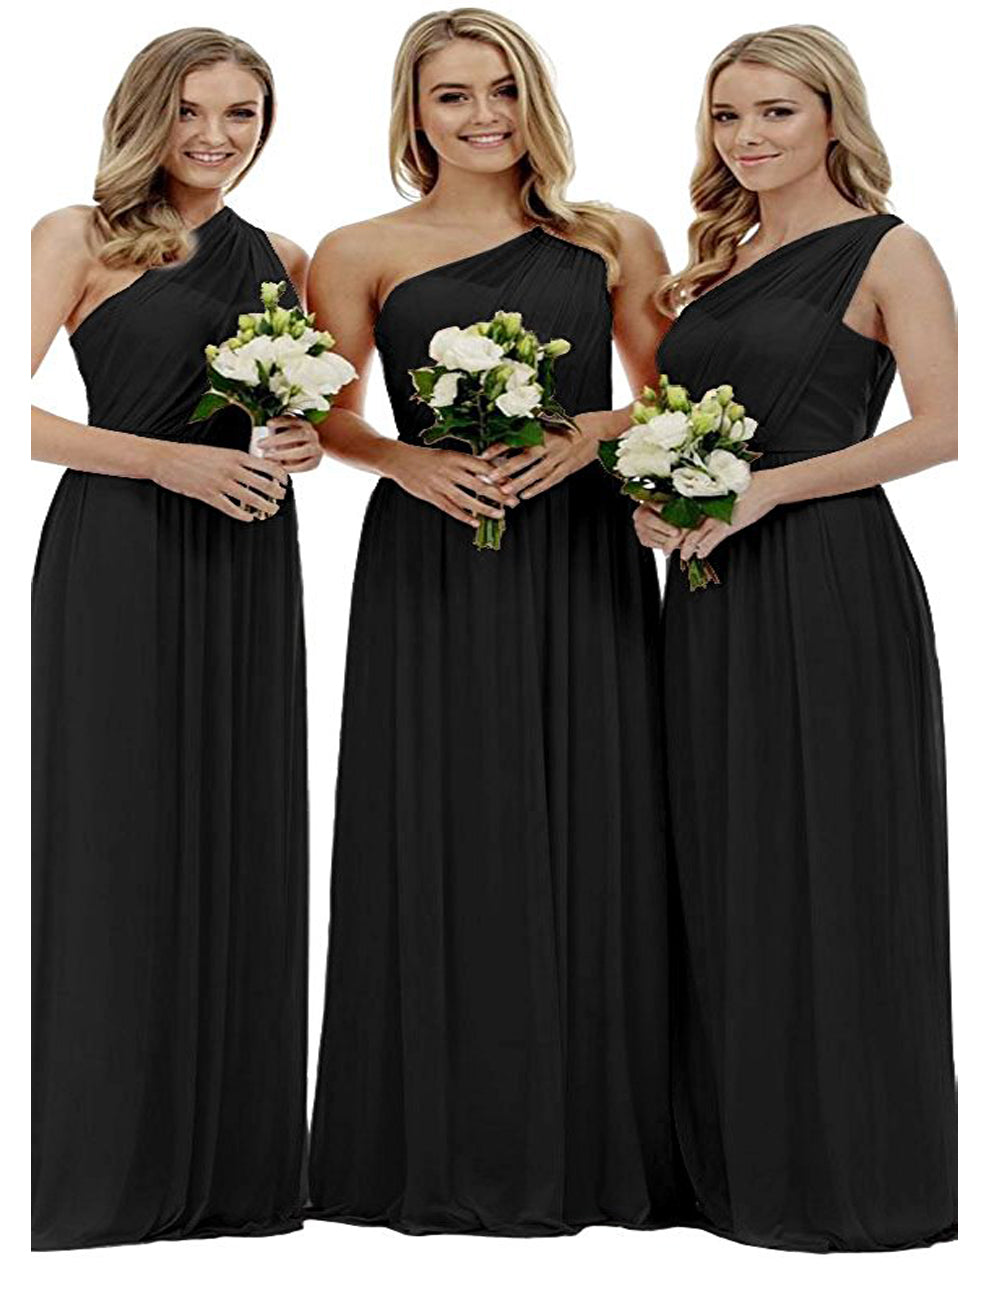 Zoe black grecian one shouldered long bridesmaid evening wedding bridal evening prom dress uk Loulous Bridal Boutique